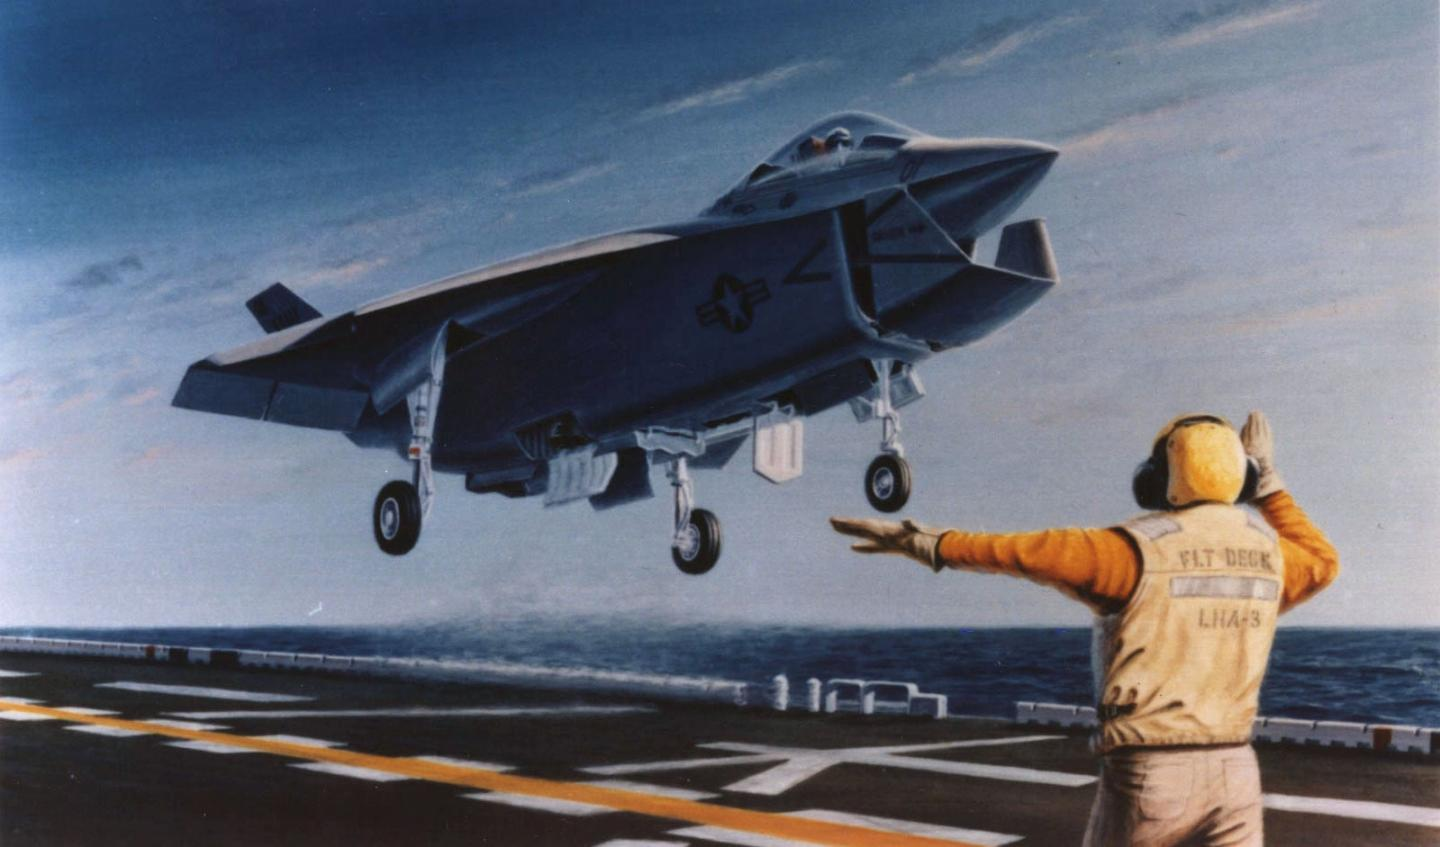 QnA VBage Introducing the X-32 Stealth Fighter (The Plane That Could Have Replace the F-35)